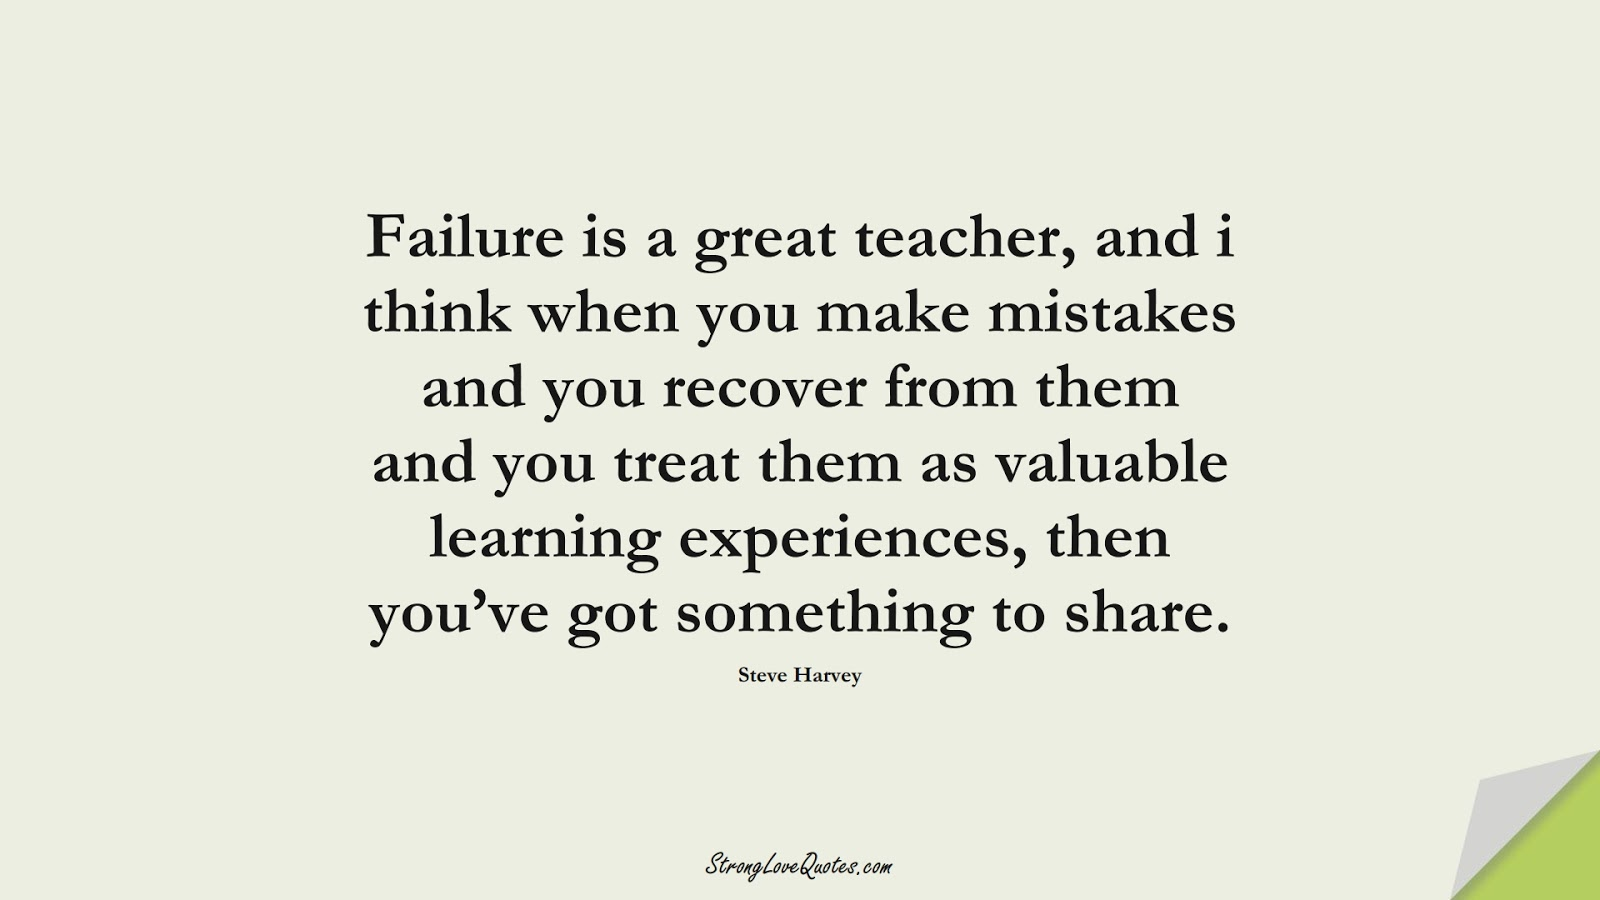 Failure is a great teacher, and i think when you make mistakes and you recover from them and you treat them as valuable learning experiences, then you've got something to share. (Steve Harvey);  #EducationQuotes